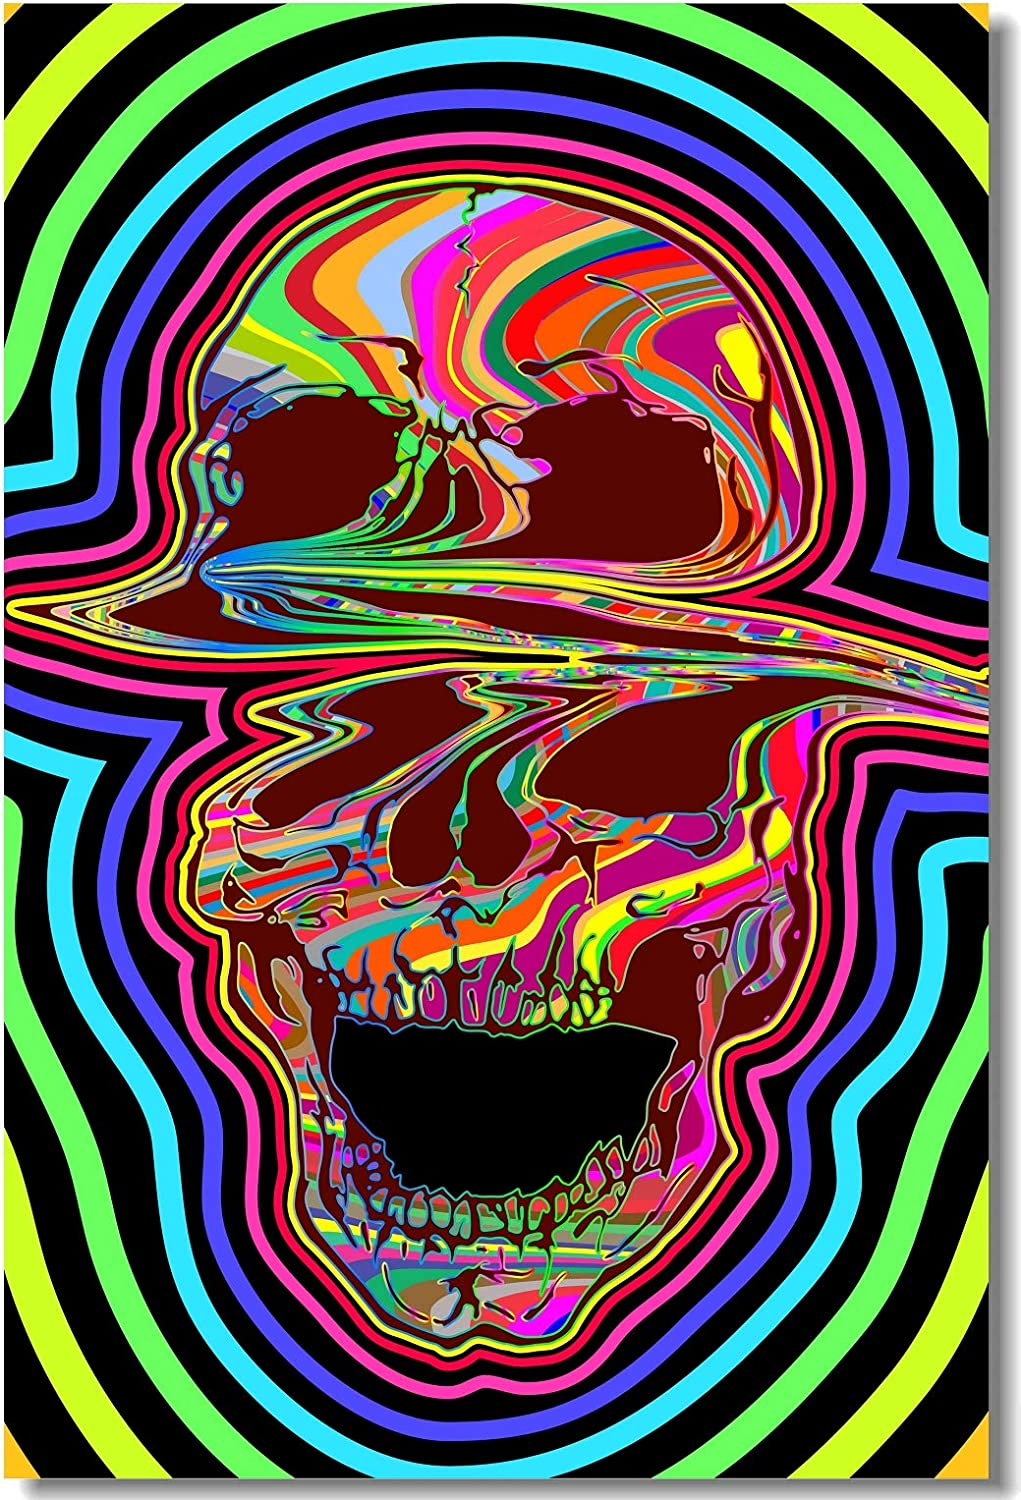 Poster Psychedelic Trippy Colorful Ttrippy Surreal Abstract Astral Art Print 37